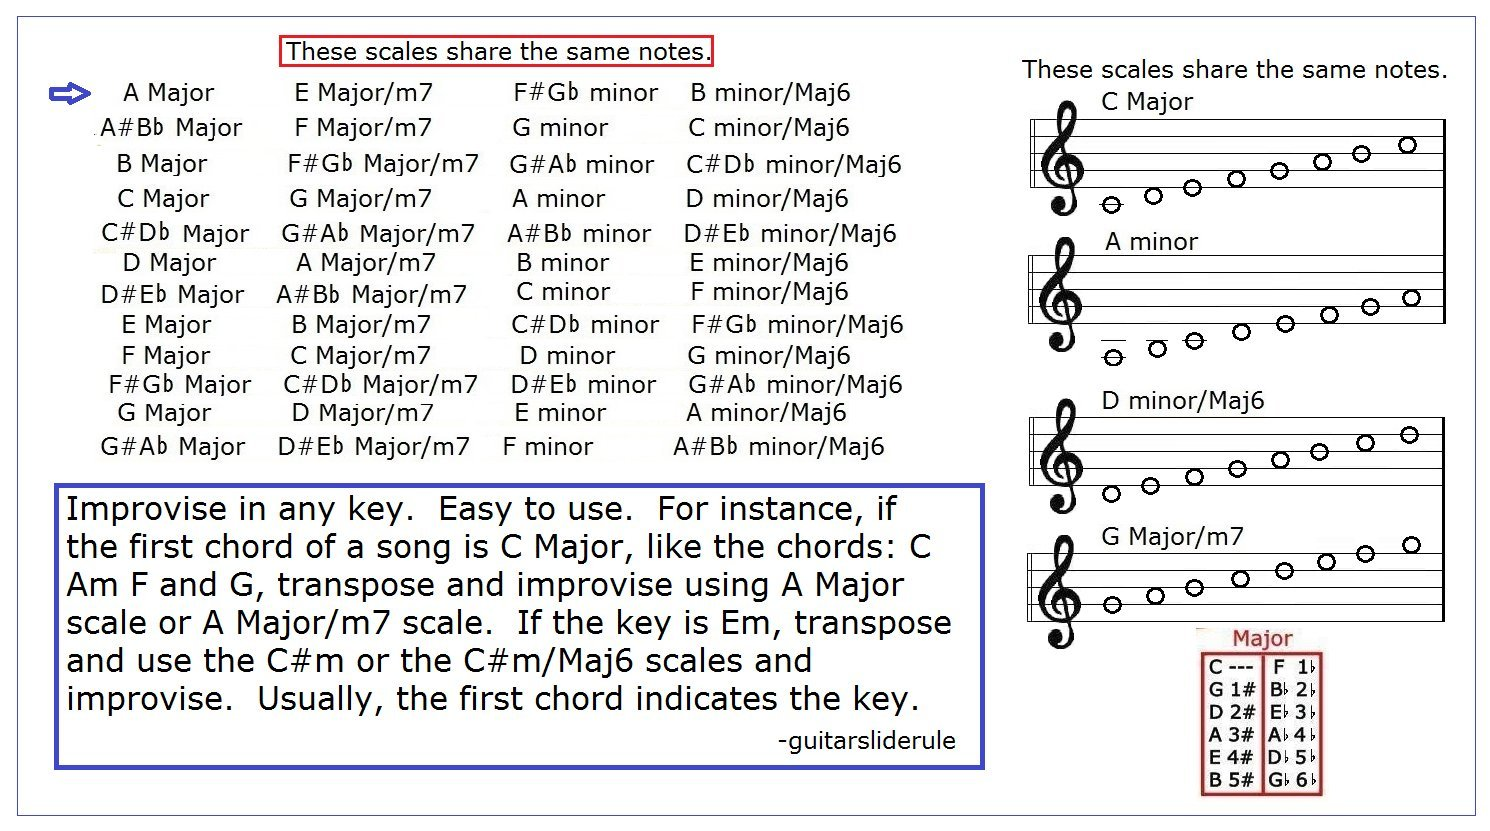 Amazon baritone saxophone chart 12 scales for sax musical amazon baritone saxophone chart 12 scales for sax musical instruments hexwebz Gallery